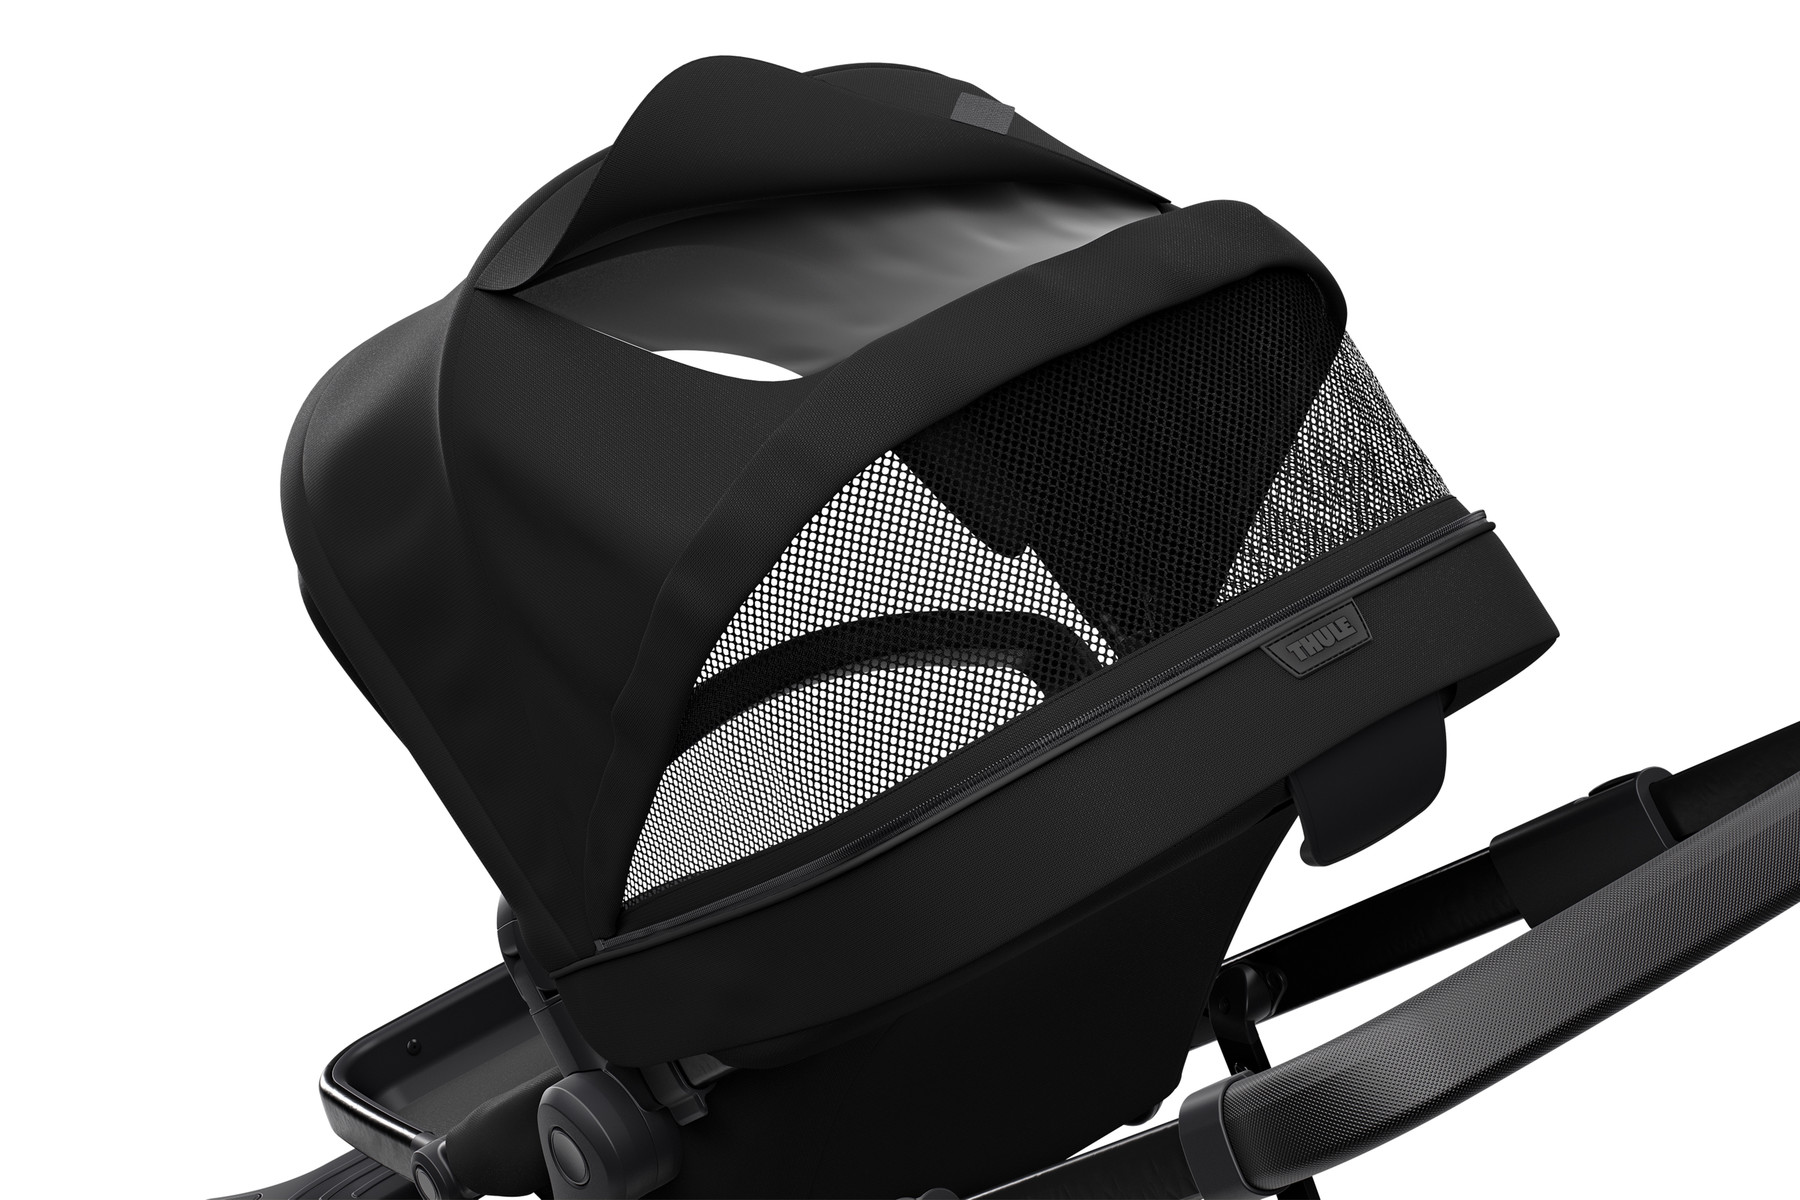 Canopy of stroller Thule Sleek Black-on-Black